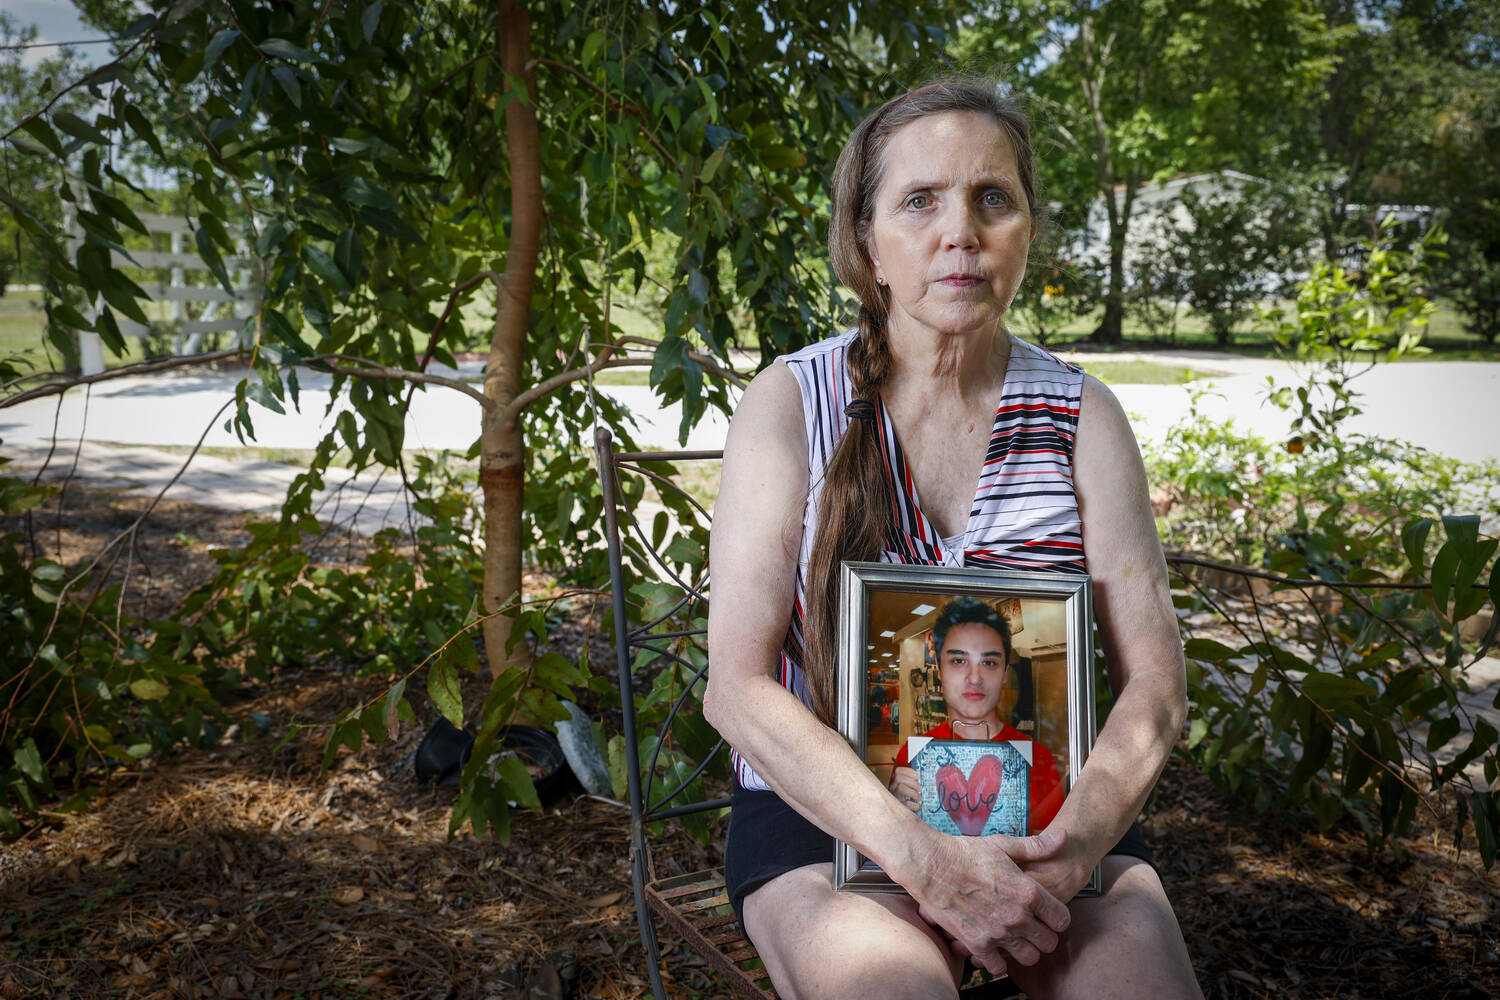 A pensive woman sits on a chair in a garden, holding a portrait of a young man.